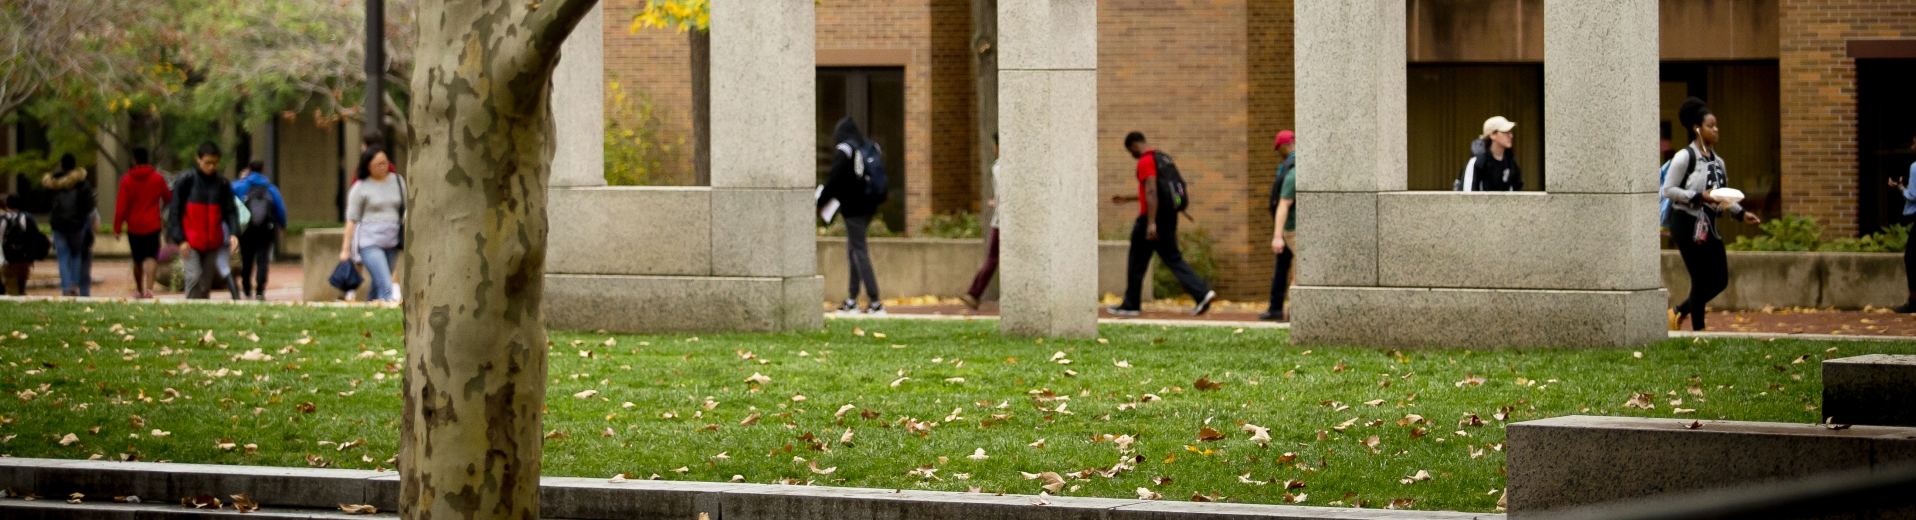 Students walking on campus green in front of a gray stone structure